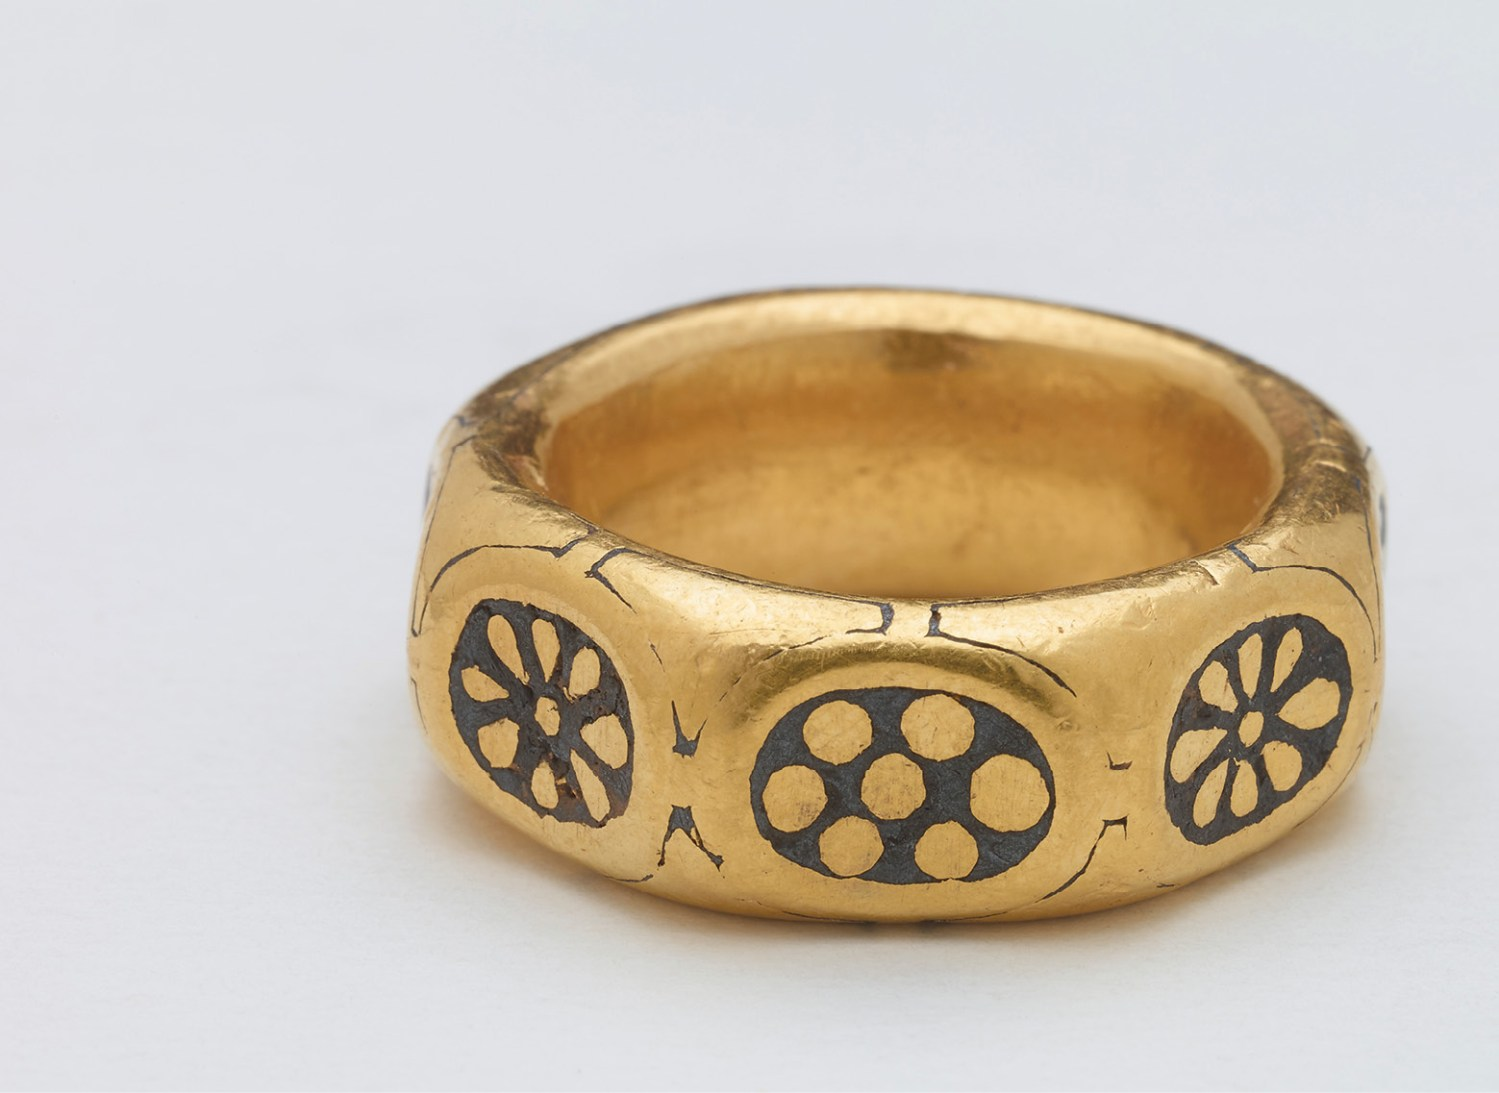 BELOW A chunky octagonal gold finger ring (external diameter: 29.4-30.3mm) was also among the recovered artefacts; its decorations place it in the 9th century. RIGHT This arm-ring or bracelet is closed by a stylised animal head apparently biting its own tail; it is probably of 9th-century Anglo-Saxon manufacture. Its external diameter is 86.4mm by 74.9mm.